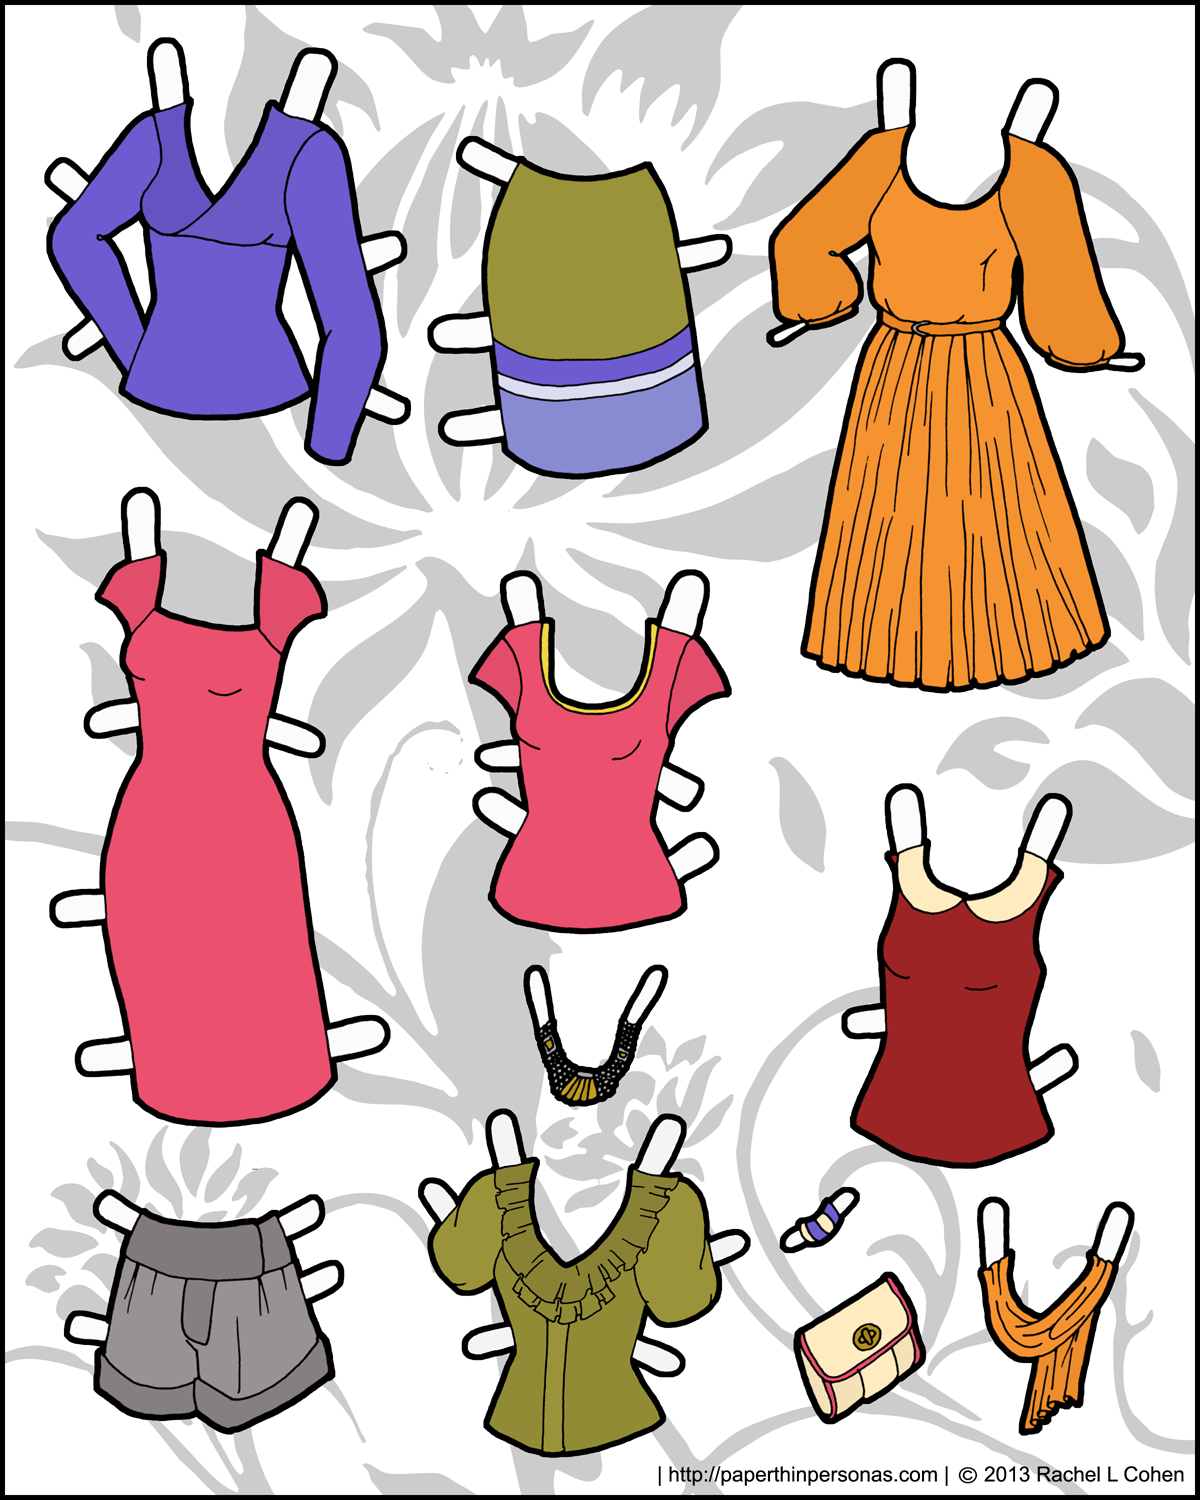 image regarding Paper Doll Clothes Printable named Some extra paper doll outfits for the Mannequins Paper